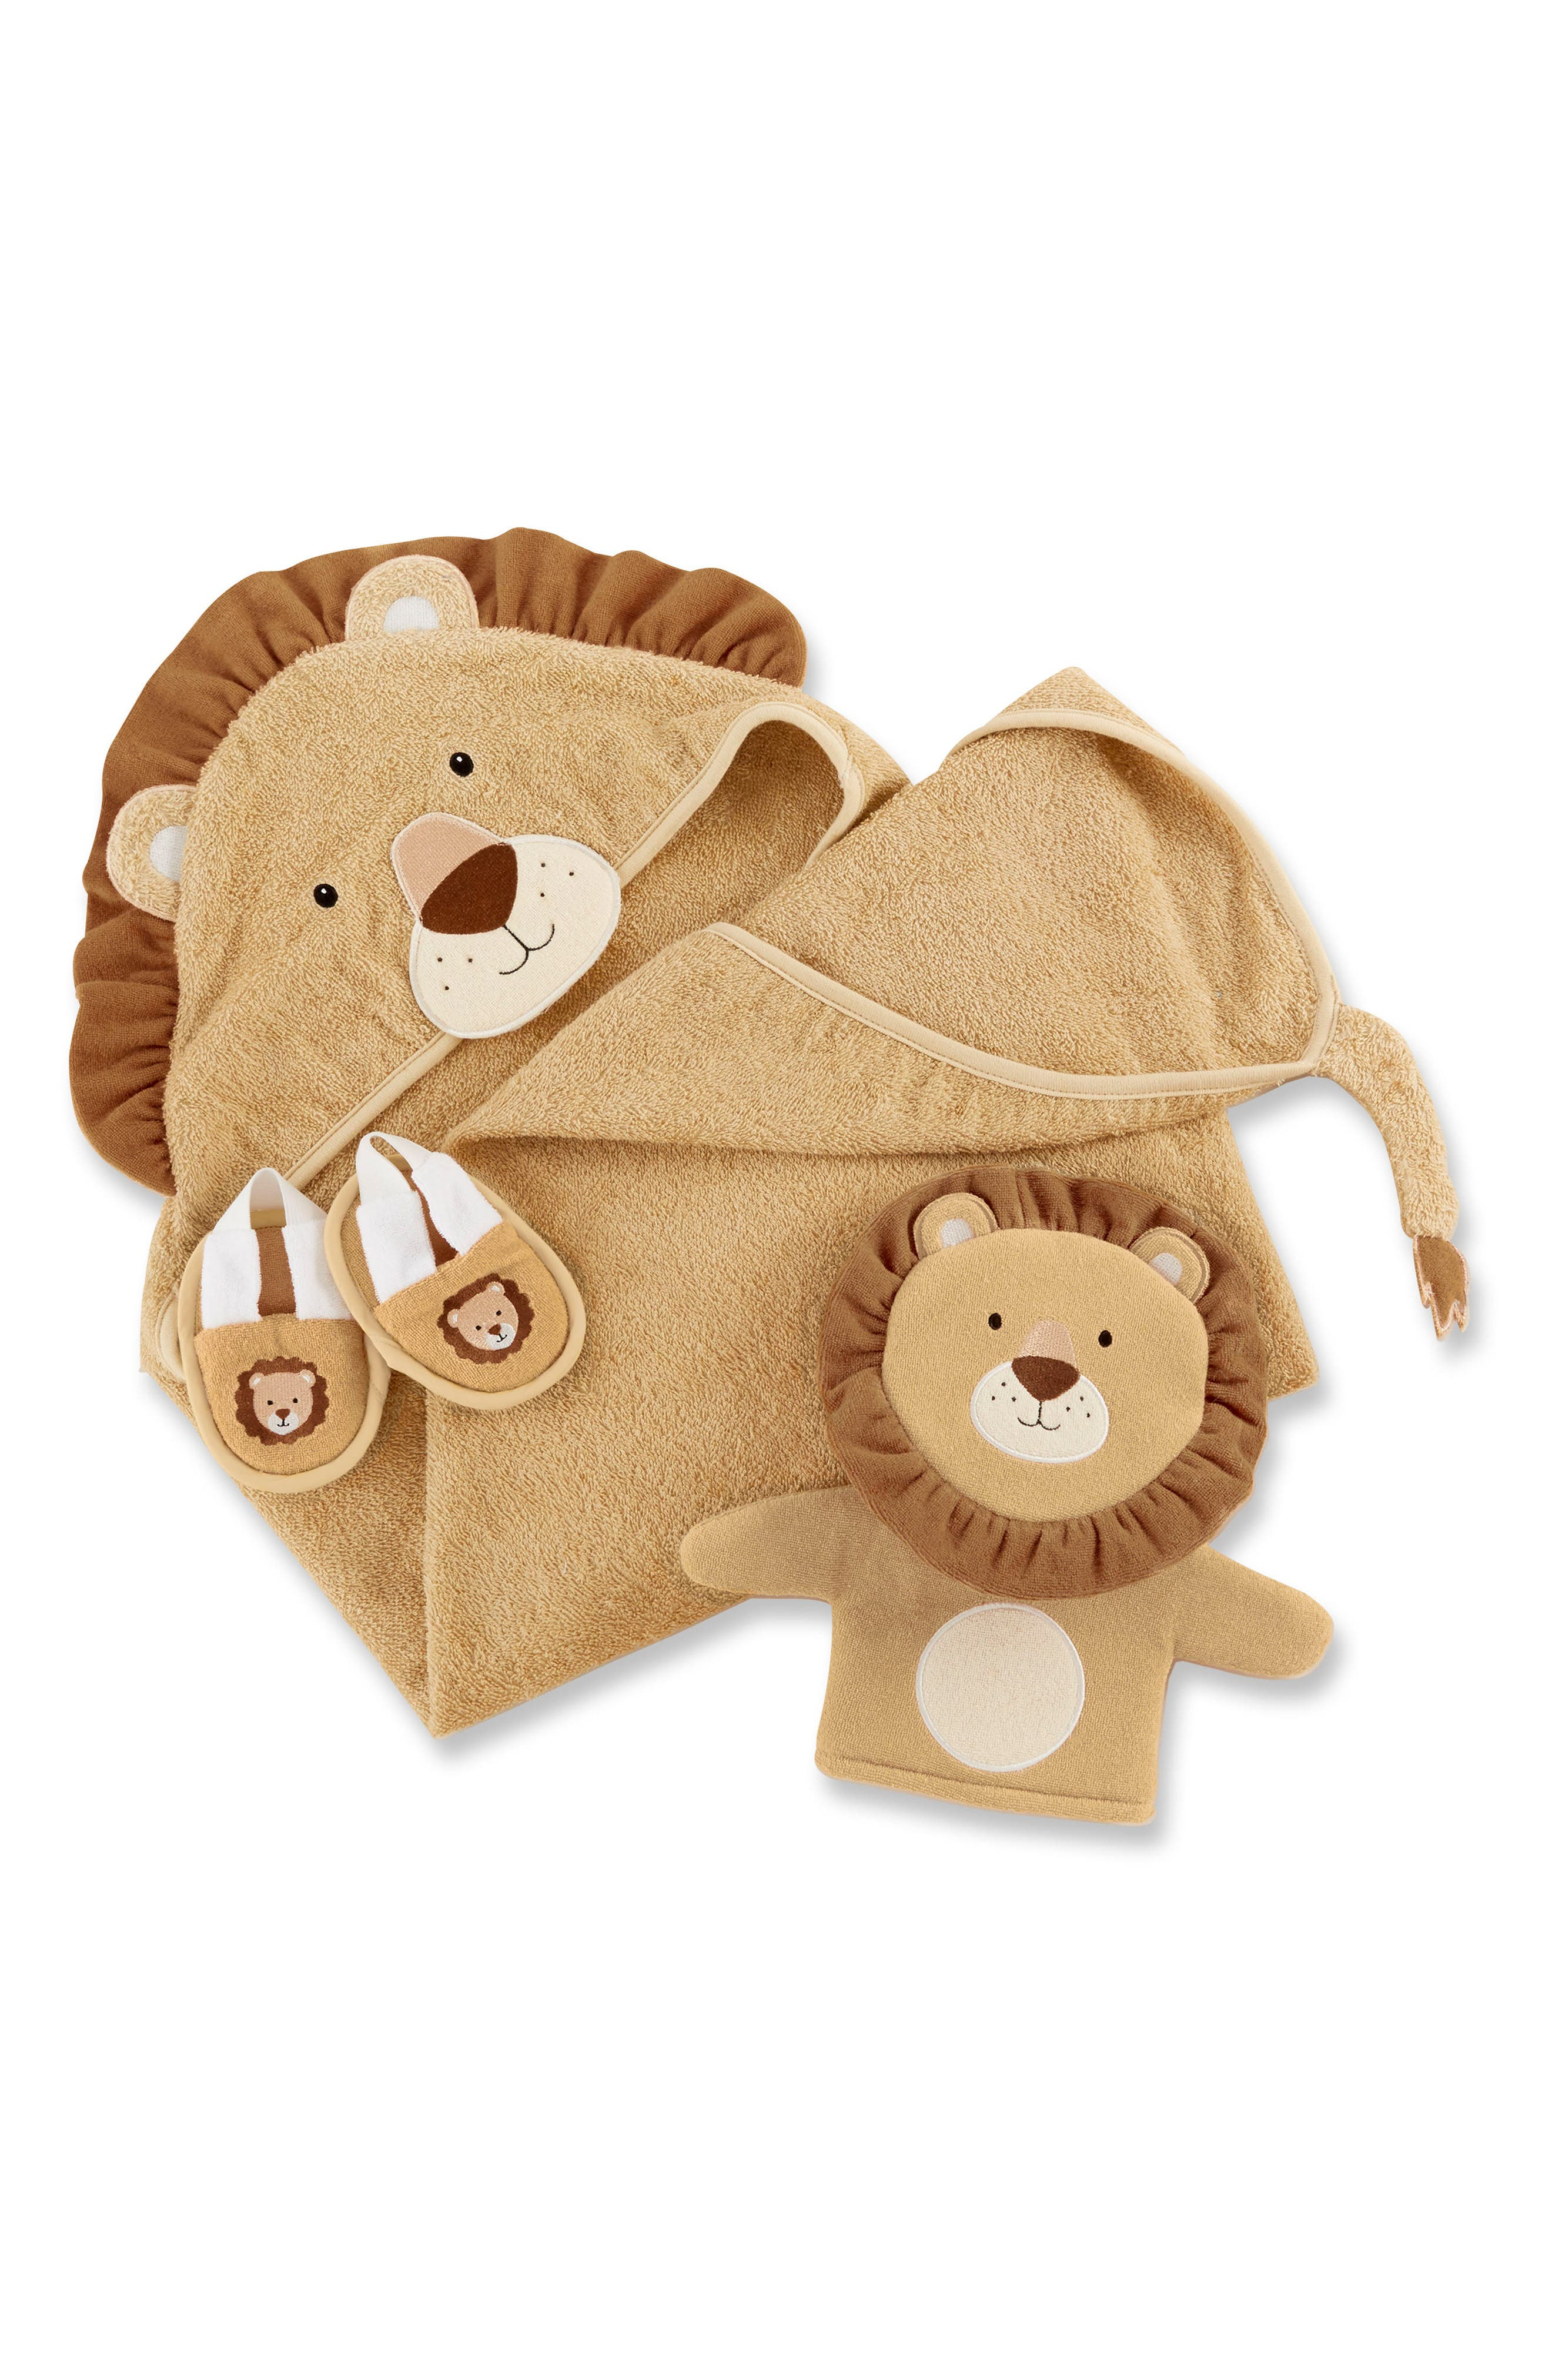 Alternate Image 1 Selected - Baby Aspen Lion Hooded Robe, Bath Mitt & Slippers Set (Baby)